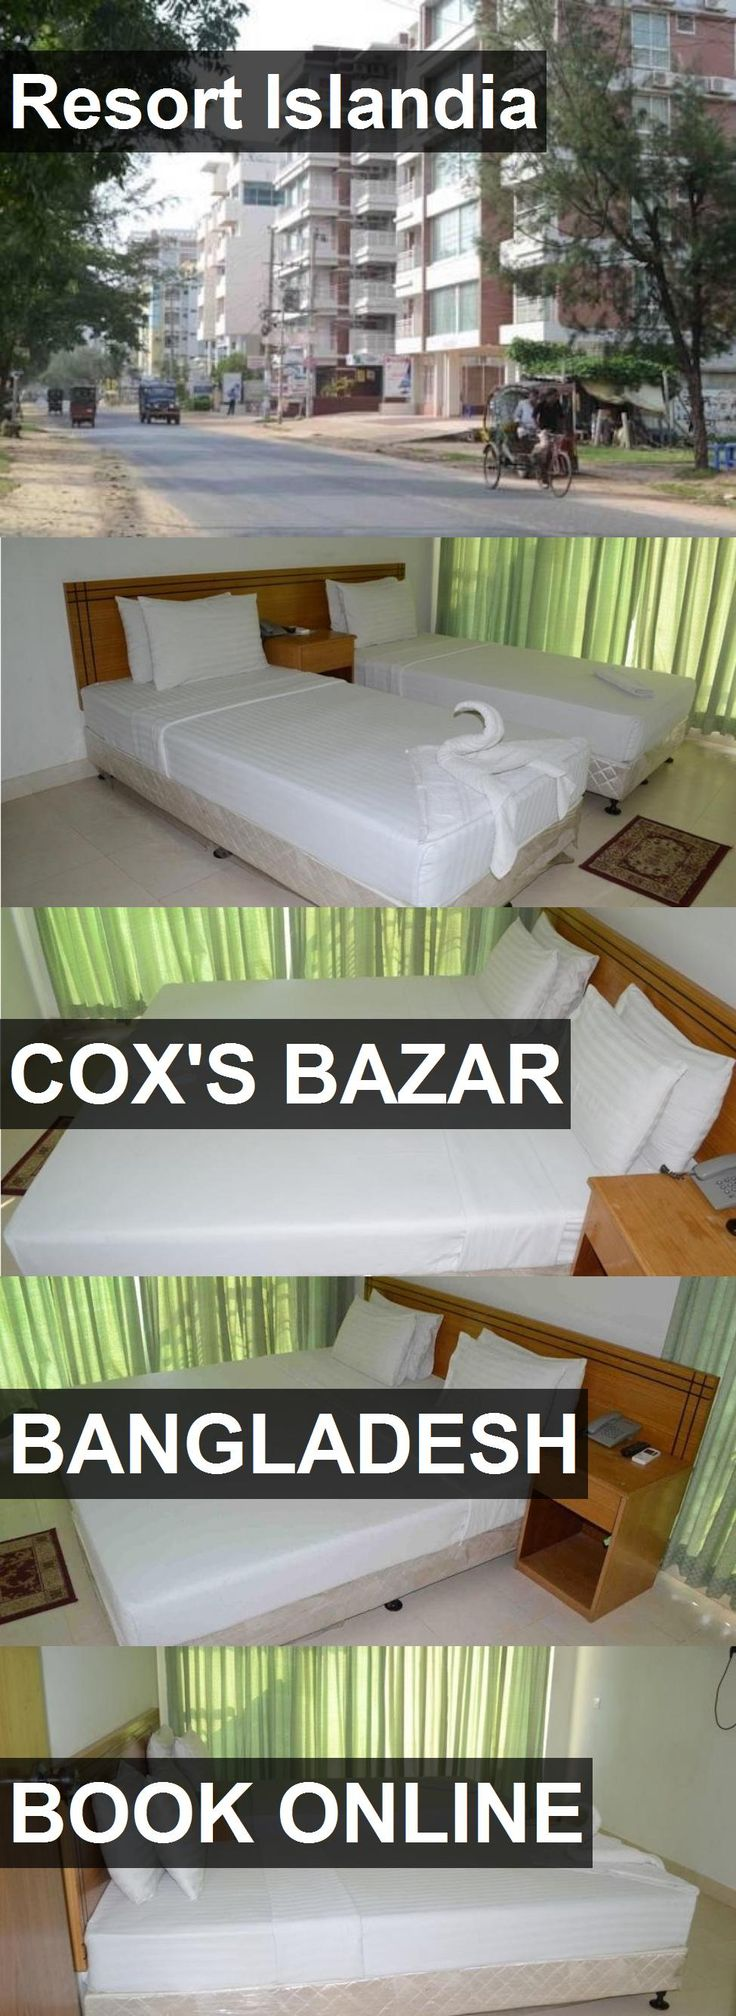 Hotel Resort Islandia in Cox's Bazar, Bangladesh. For more information, photos, reviews and best prices please follow the link. #Bangladesh #Cox'sBazar #travel #vacation #hotel